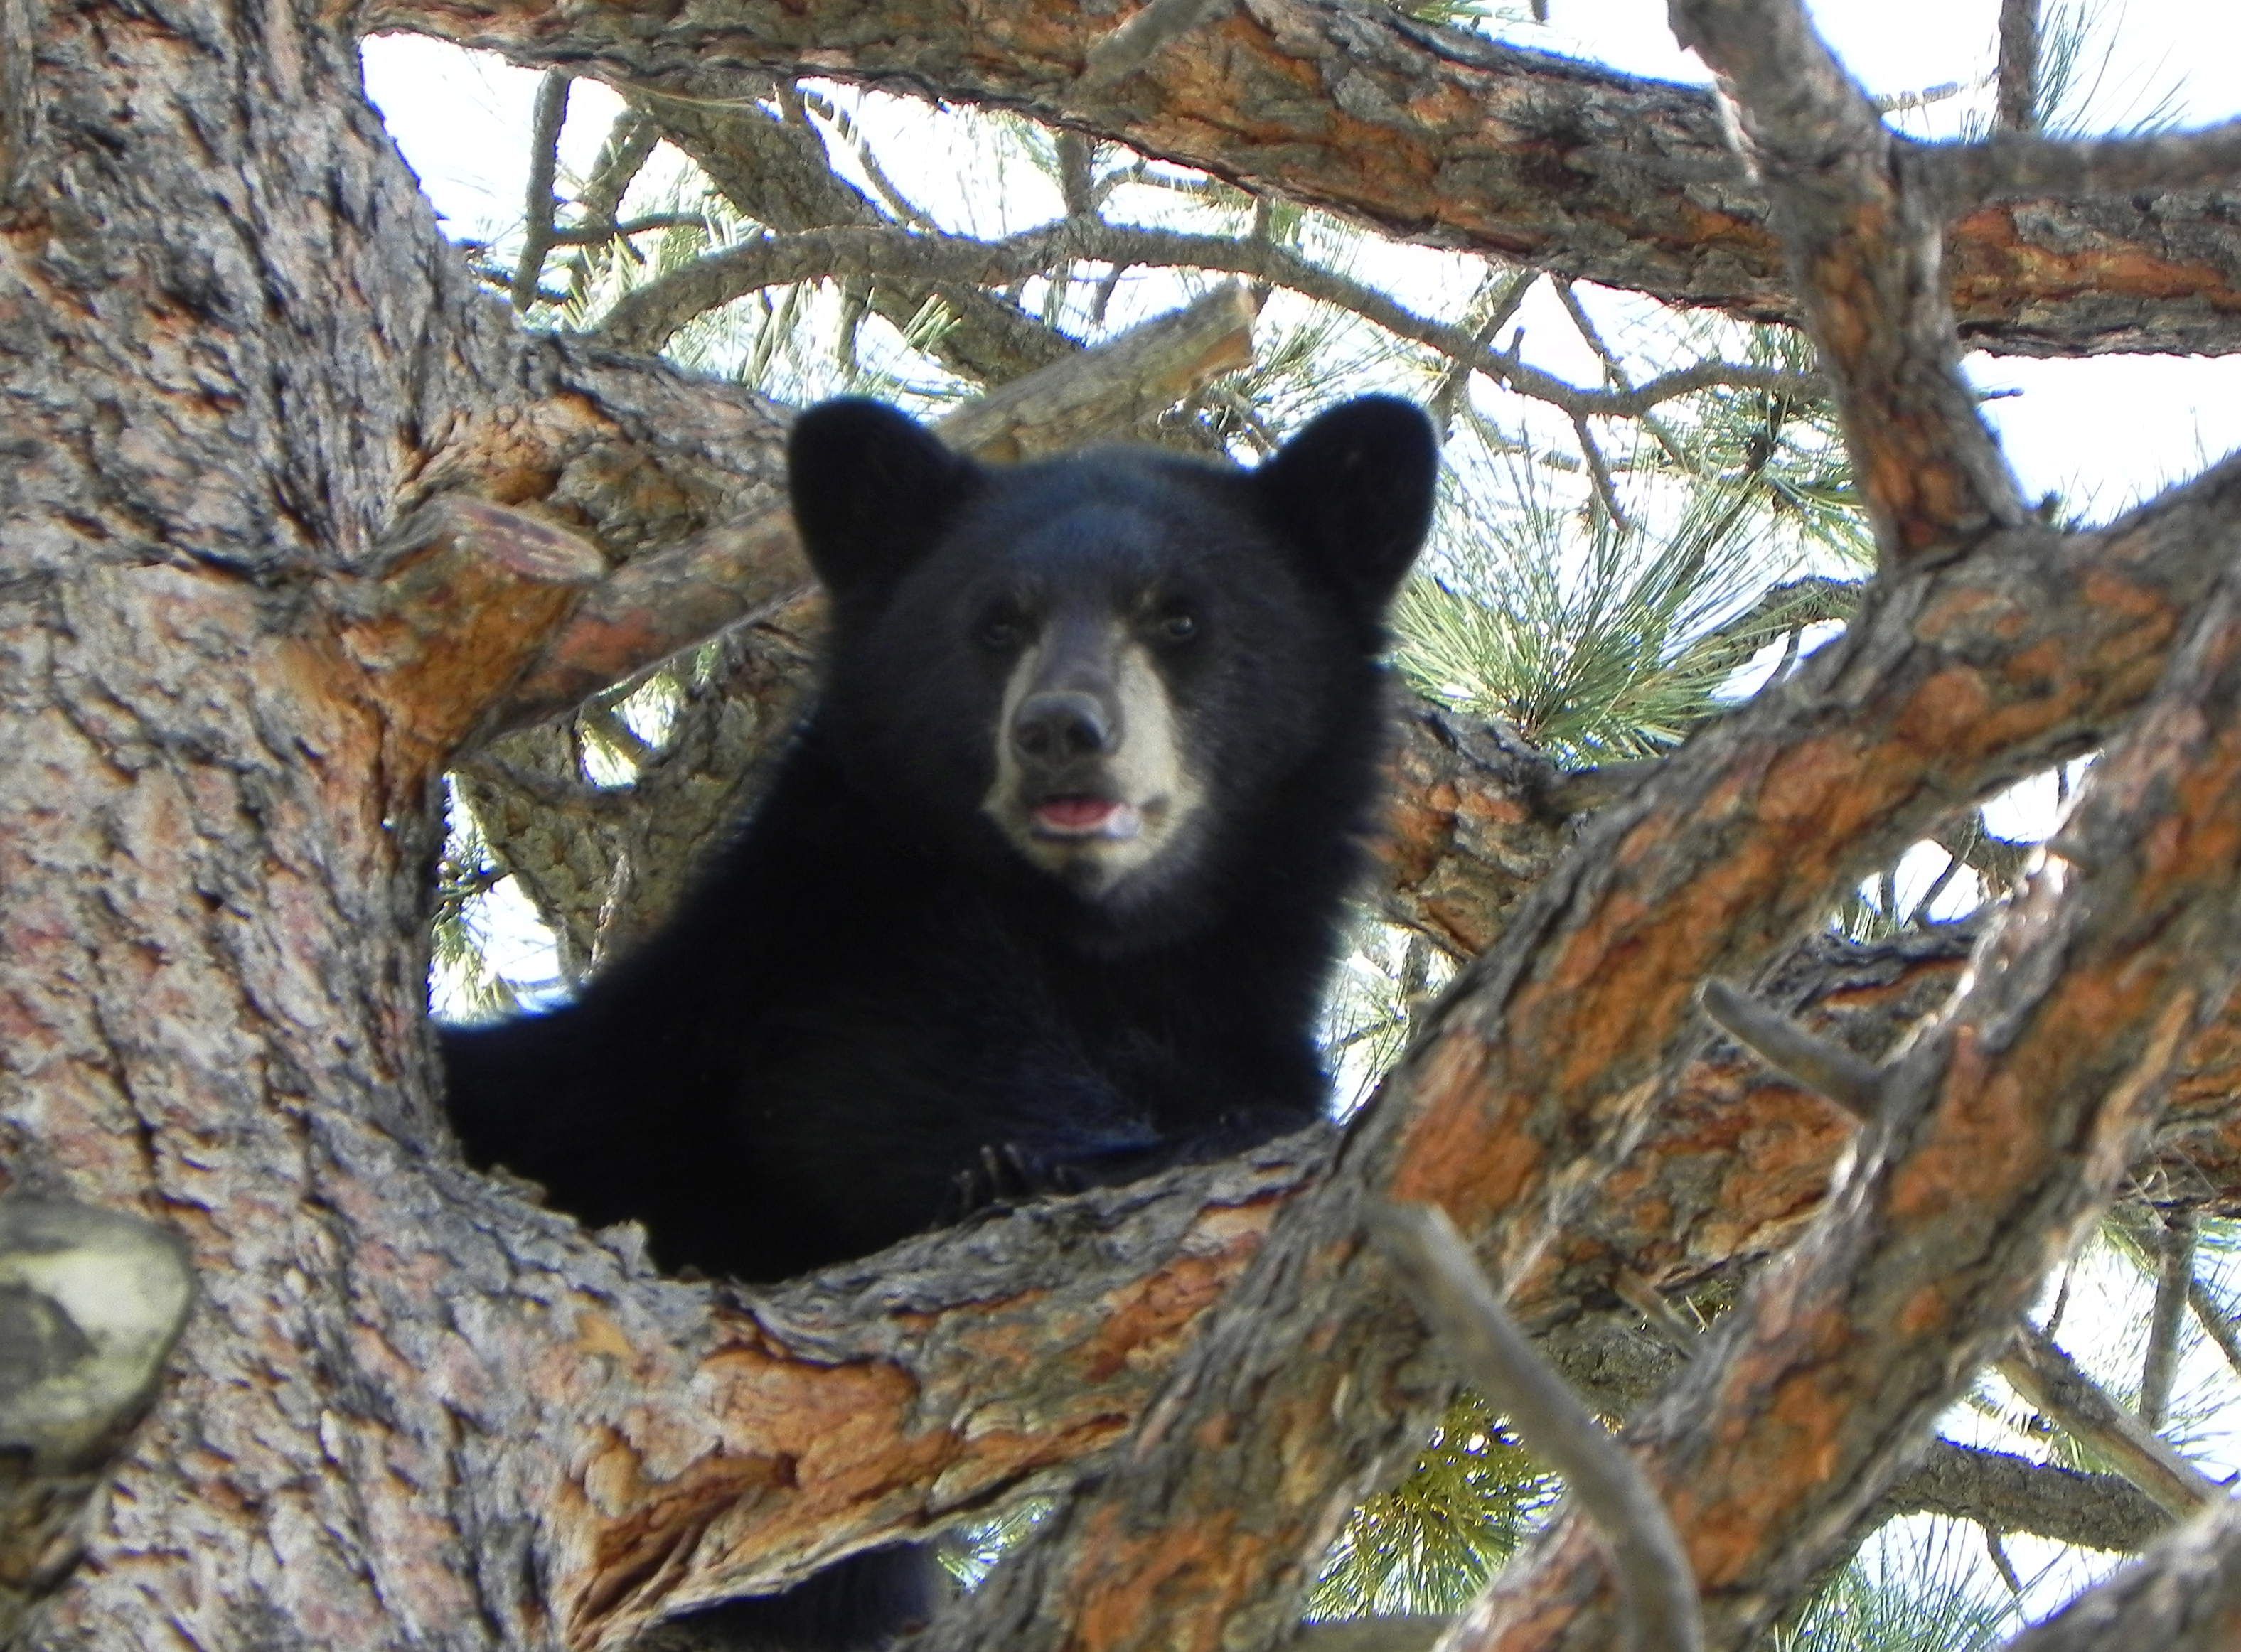 Photo: Black bear in tree